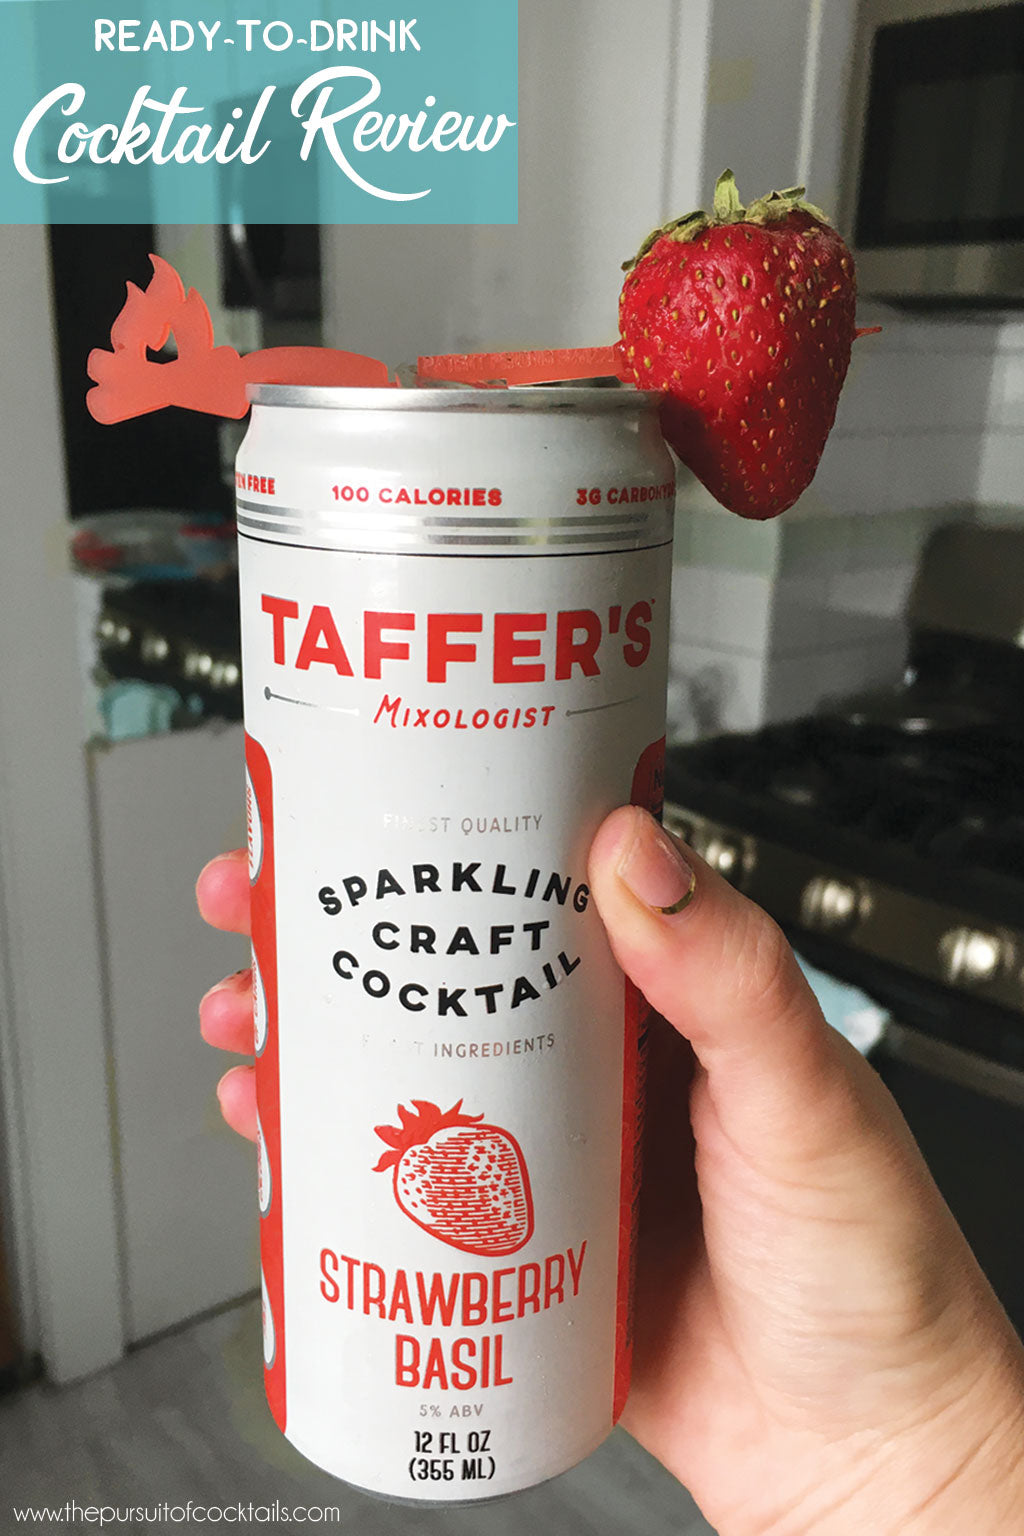 Canned cocktail review of Taffer's Mixologist sparkling cocktails